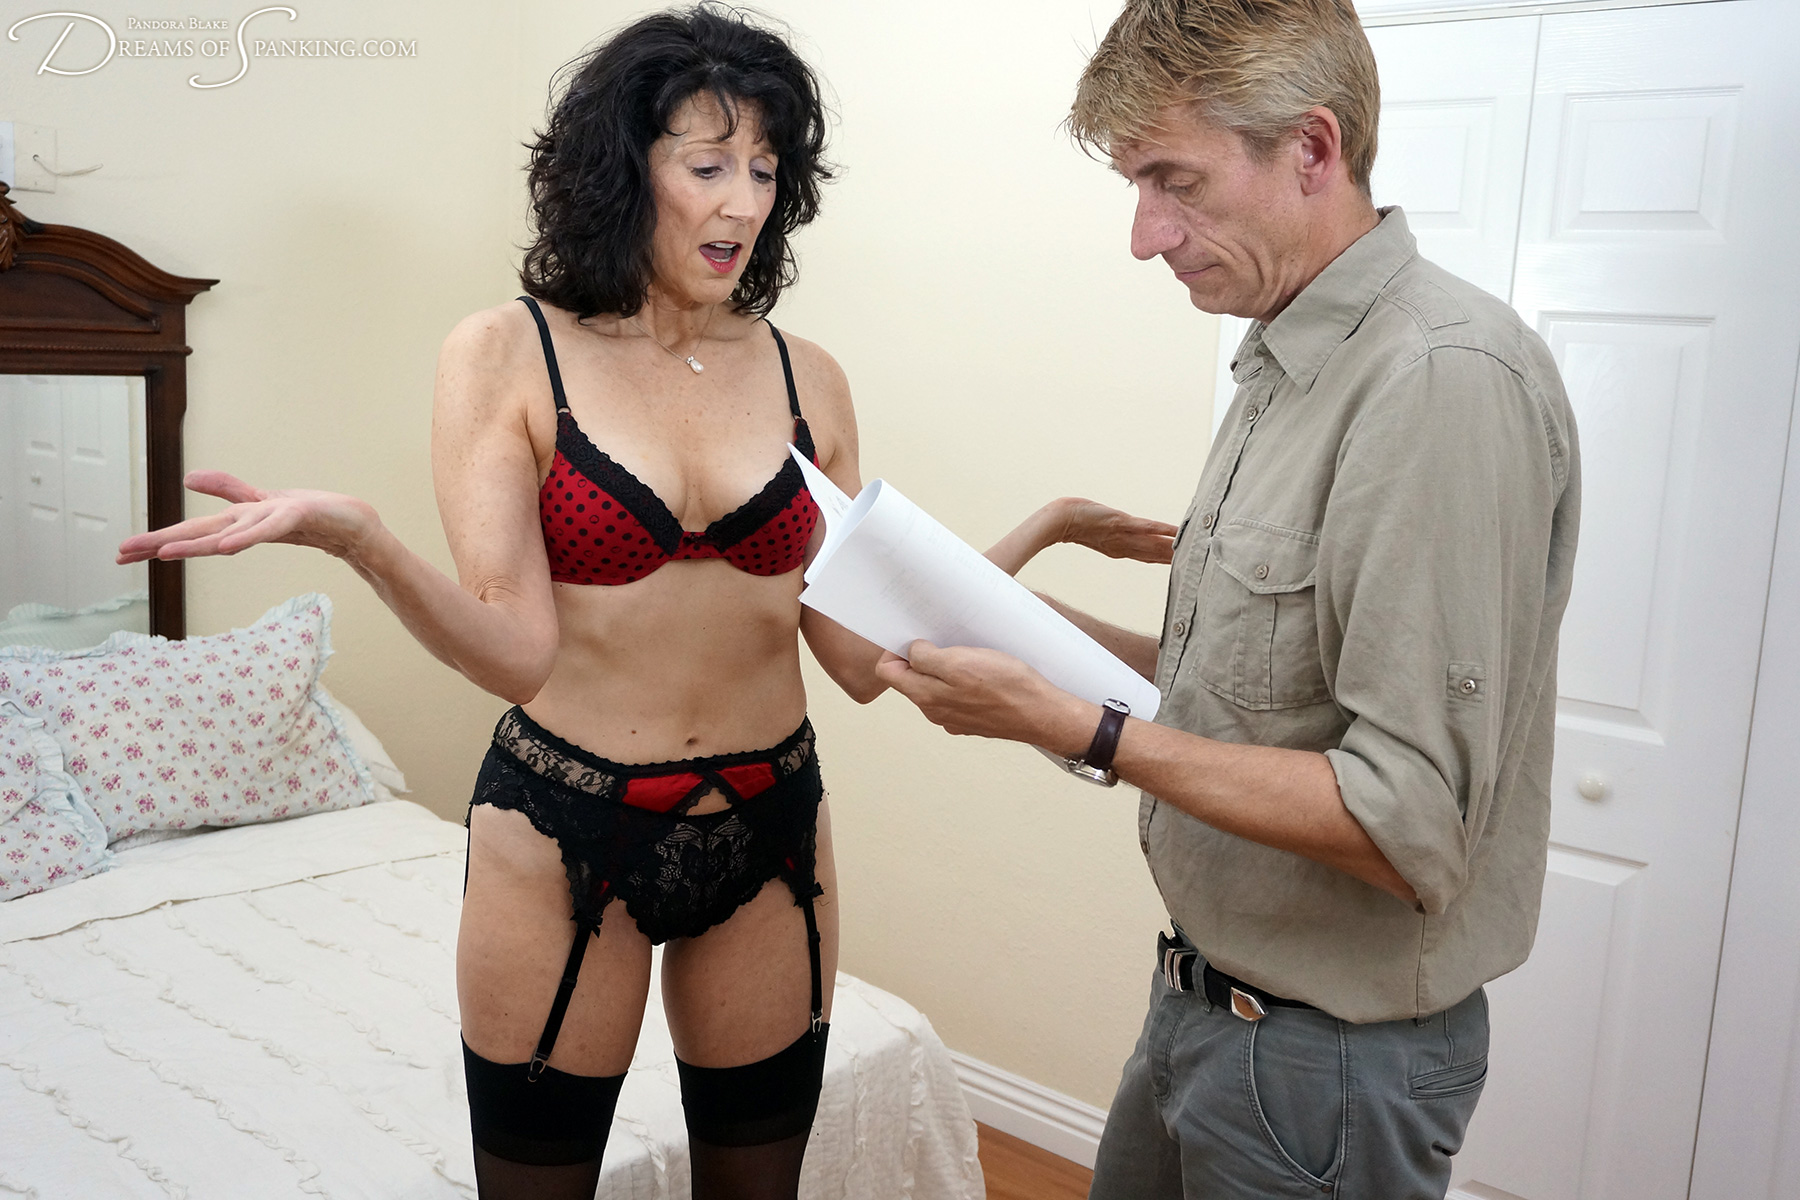 Erica Scott and Paul Kennedy for Dreams of Spanking